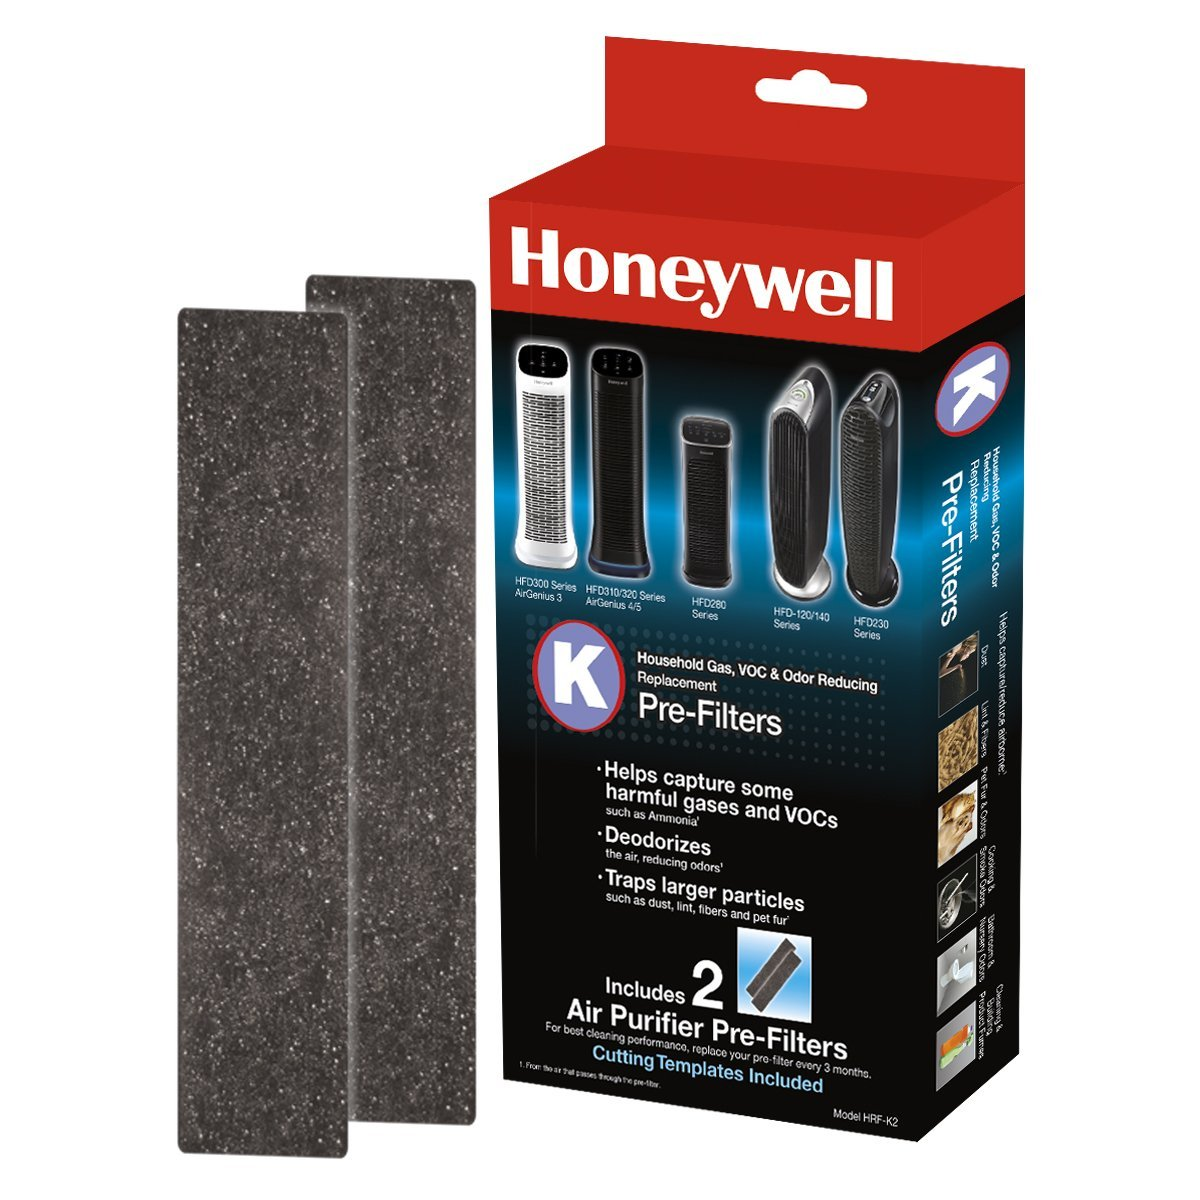 Honeywell Household Odor & Gas Reducing Pre-filter, 2 Pack